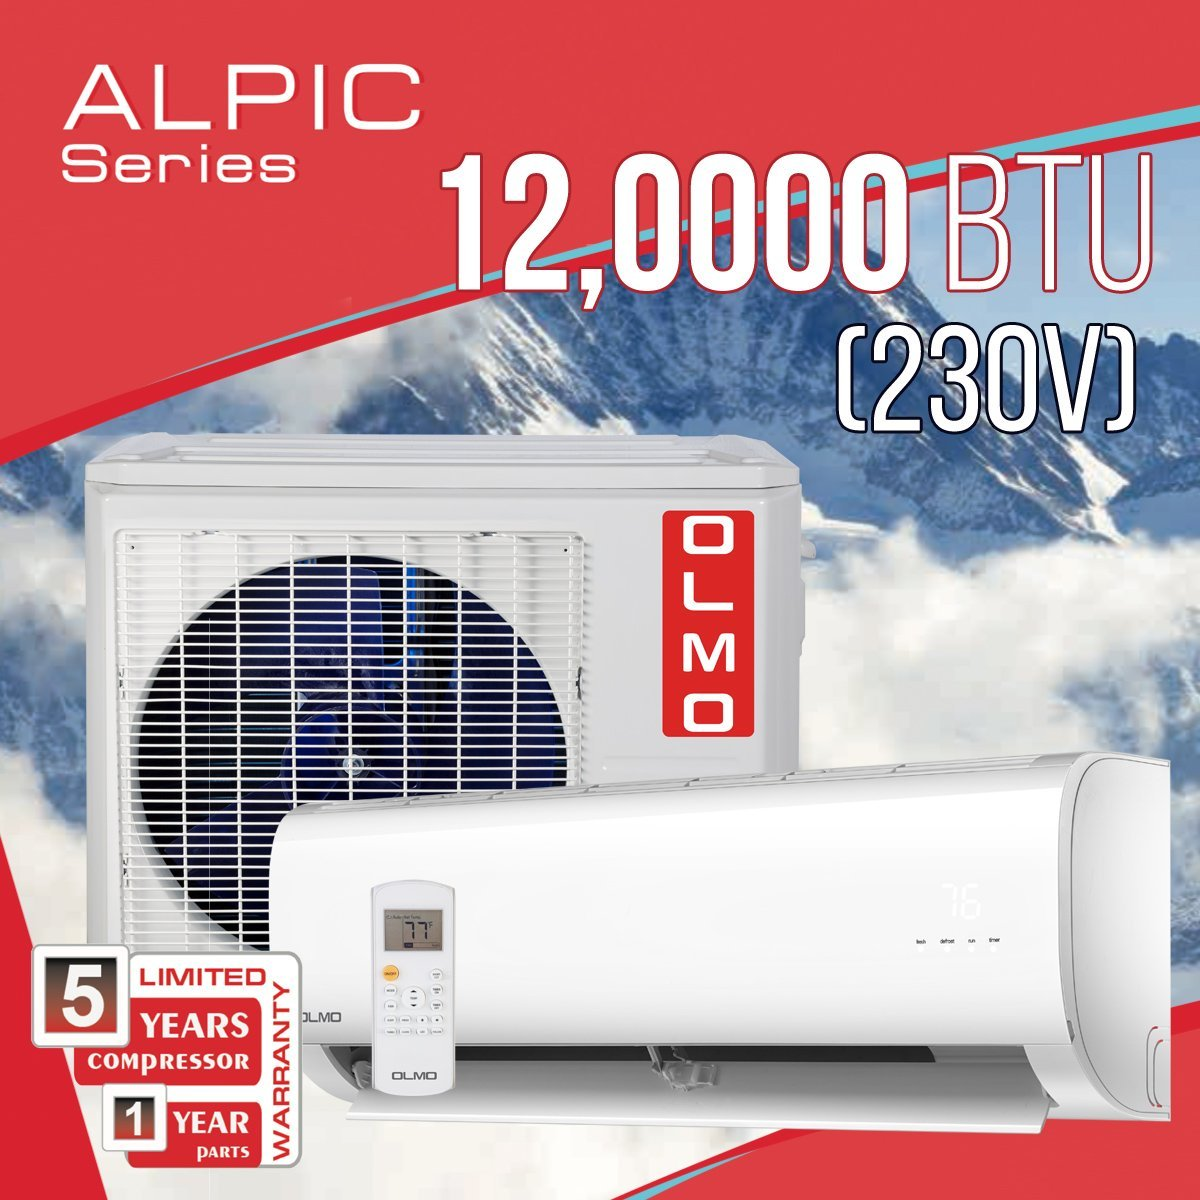 OLMO Alpic 18,000 BTU Ductless Mini Split Air Conditioner Heat Pump